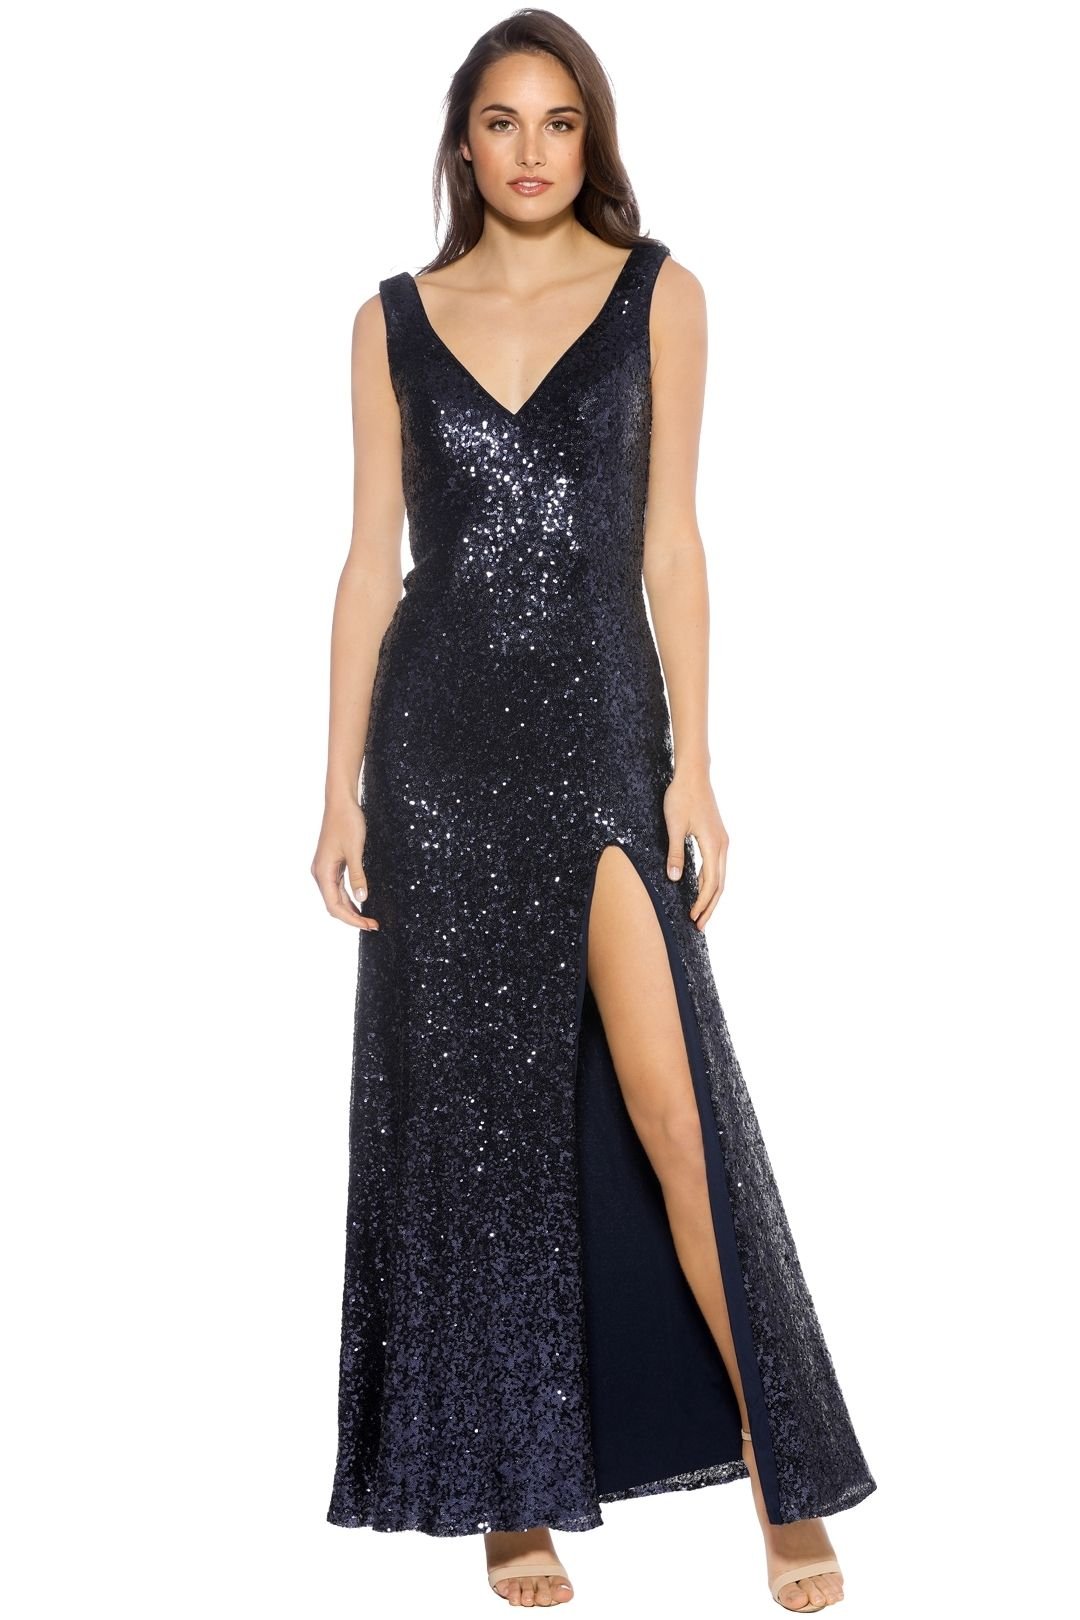 Langhem - Love on Top Navy Gown - Navy - Front